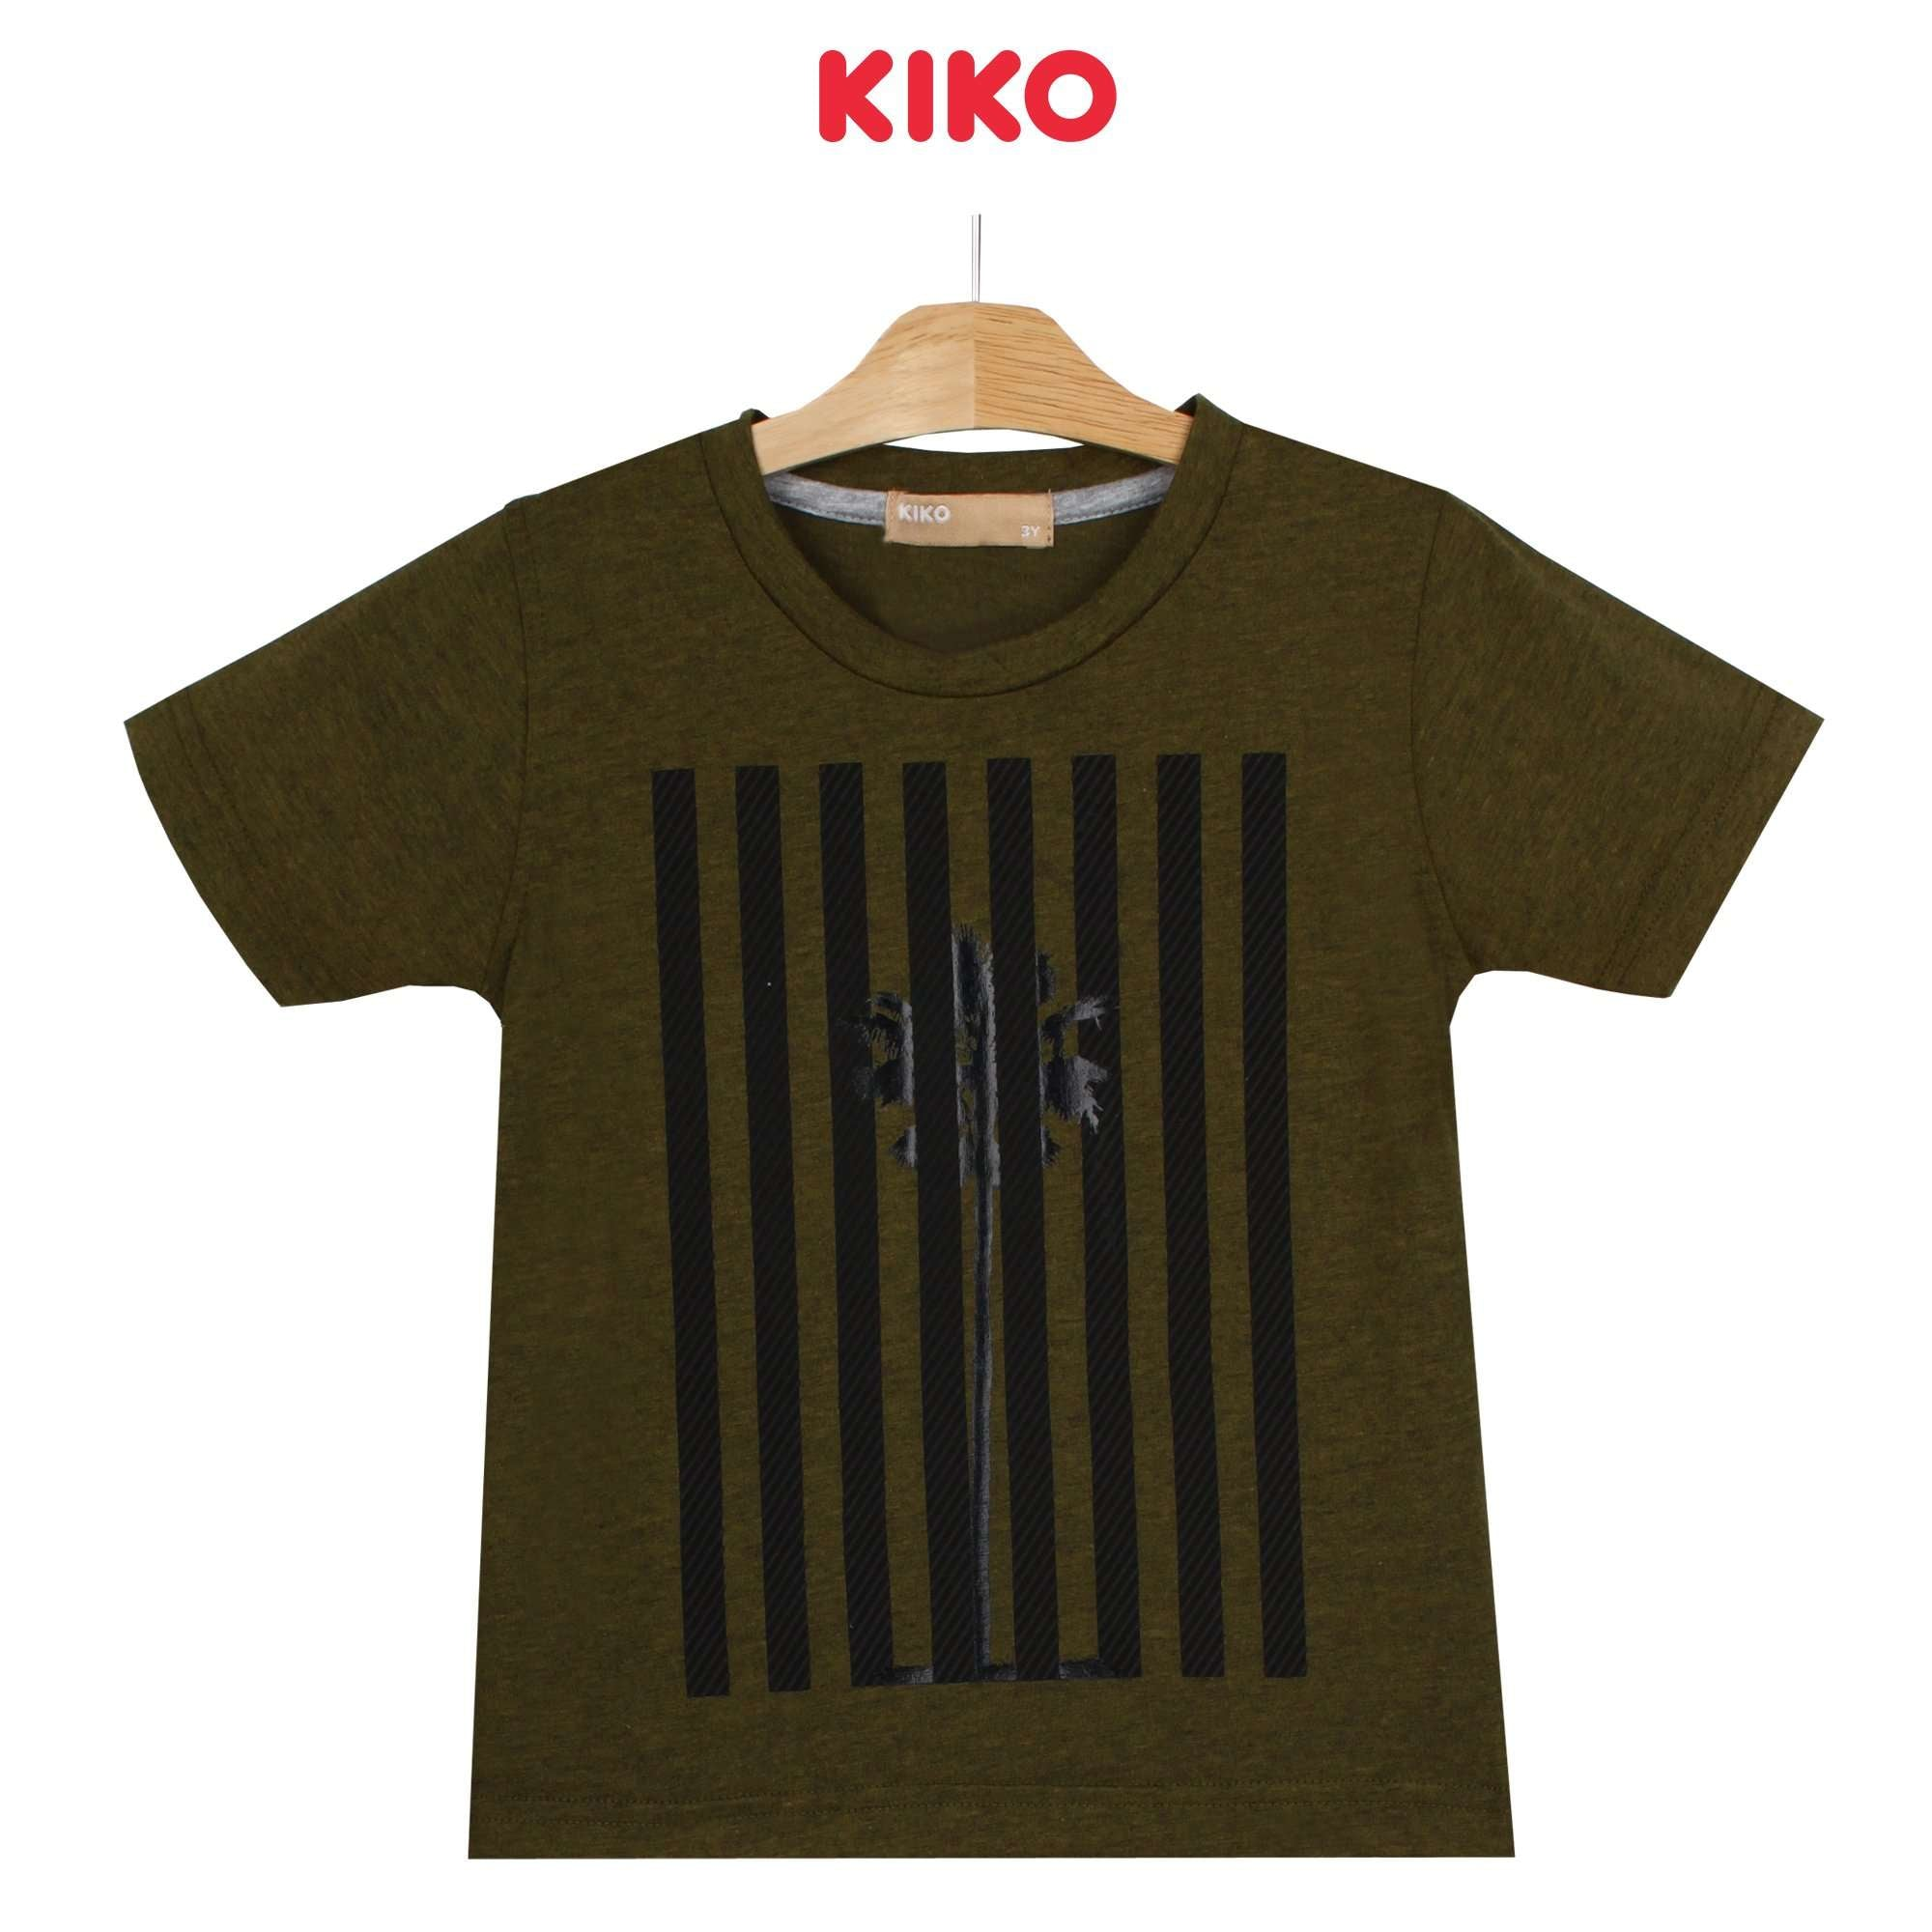 KIKO Boy Short Sleeve Tee - Green 130096-112 : Buy KIKO online at CMG.MY